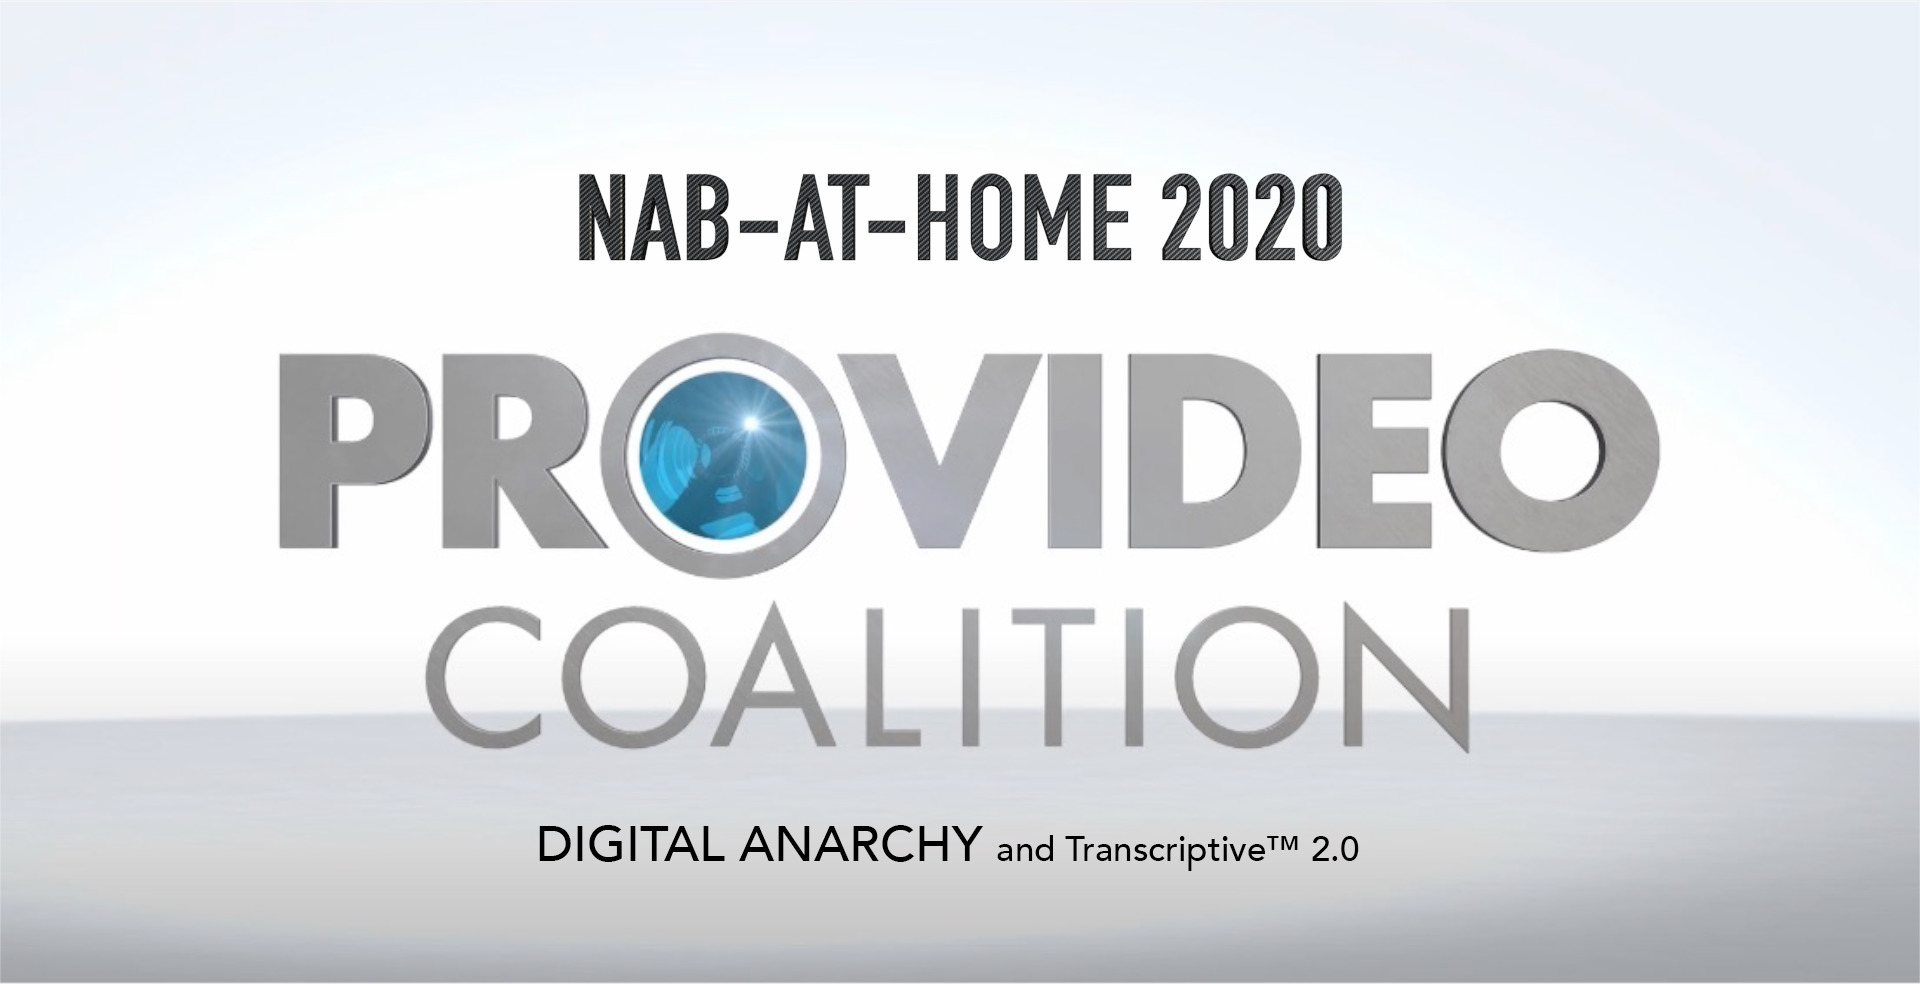 NAB-AT-HOME 2020: Transcriptive 2.0 from Digital Anarchy and a big price cut 2